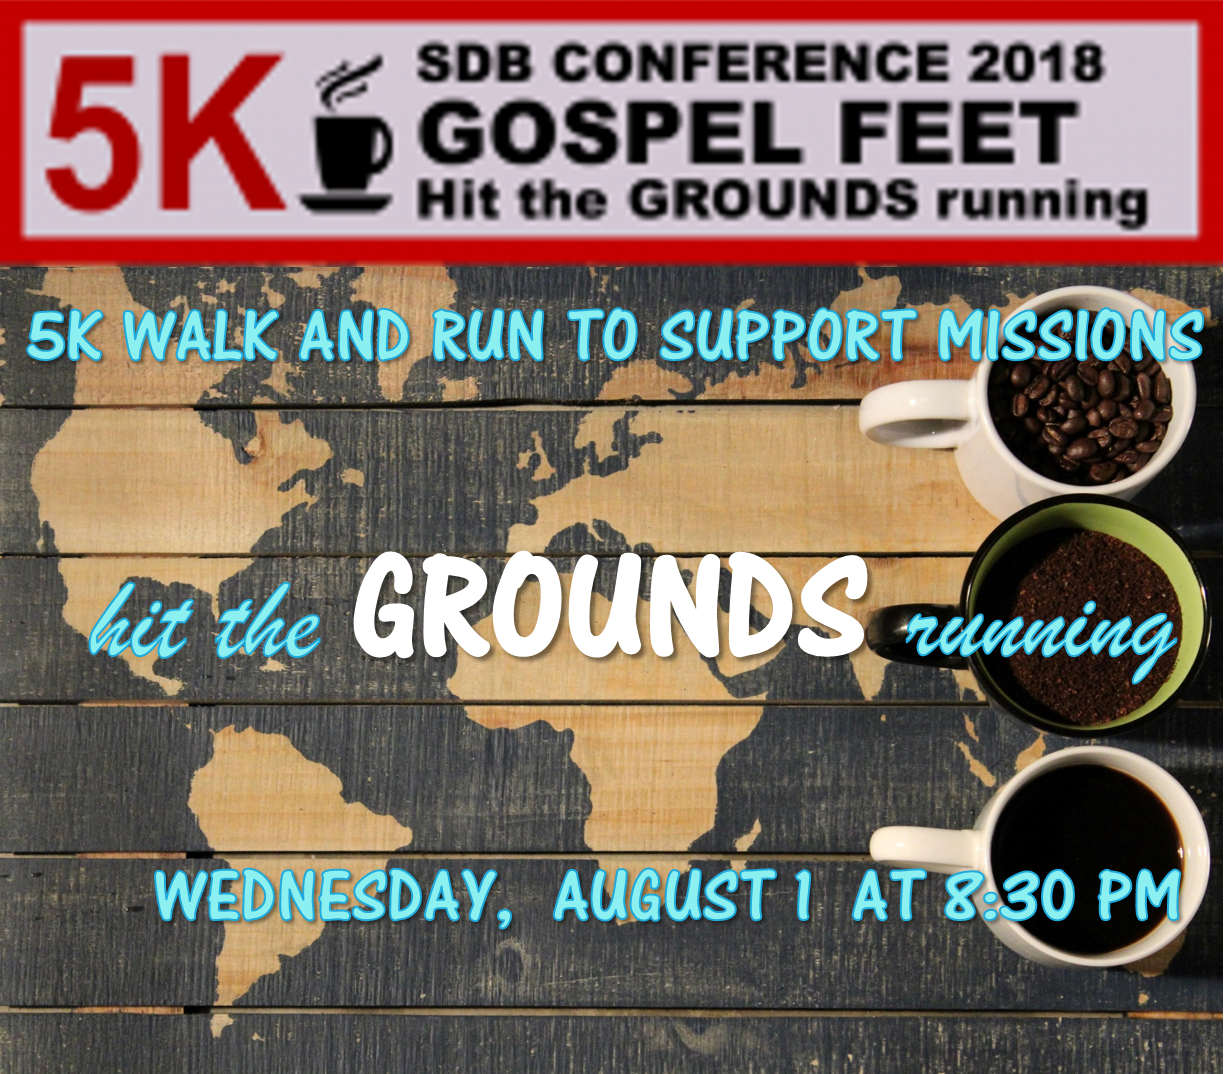 Thumbnail for the post titled: Gospel Feet 5K – You can Participate or Donate